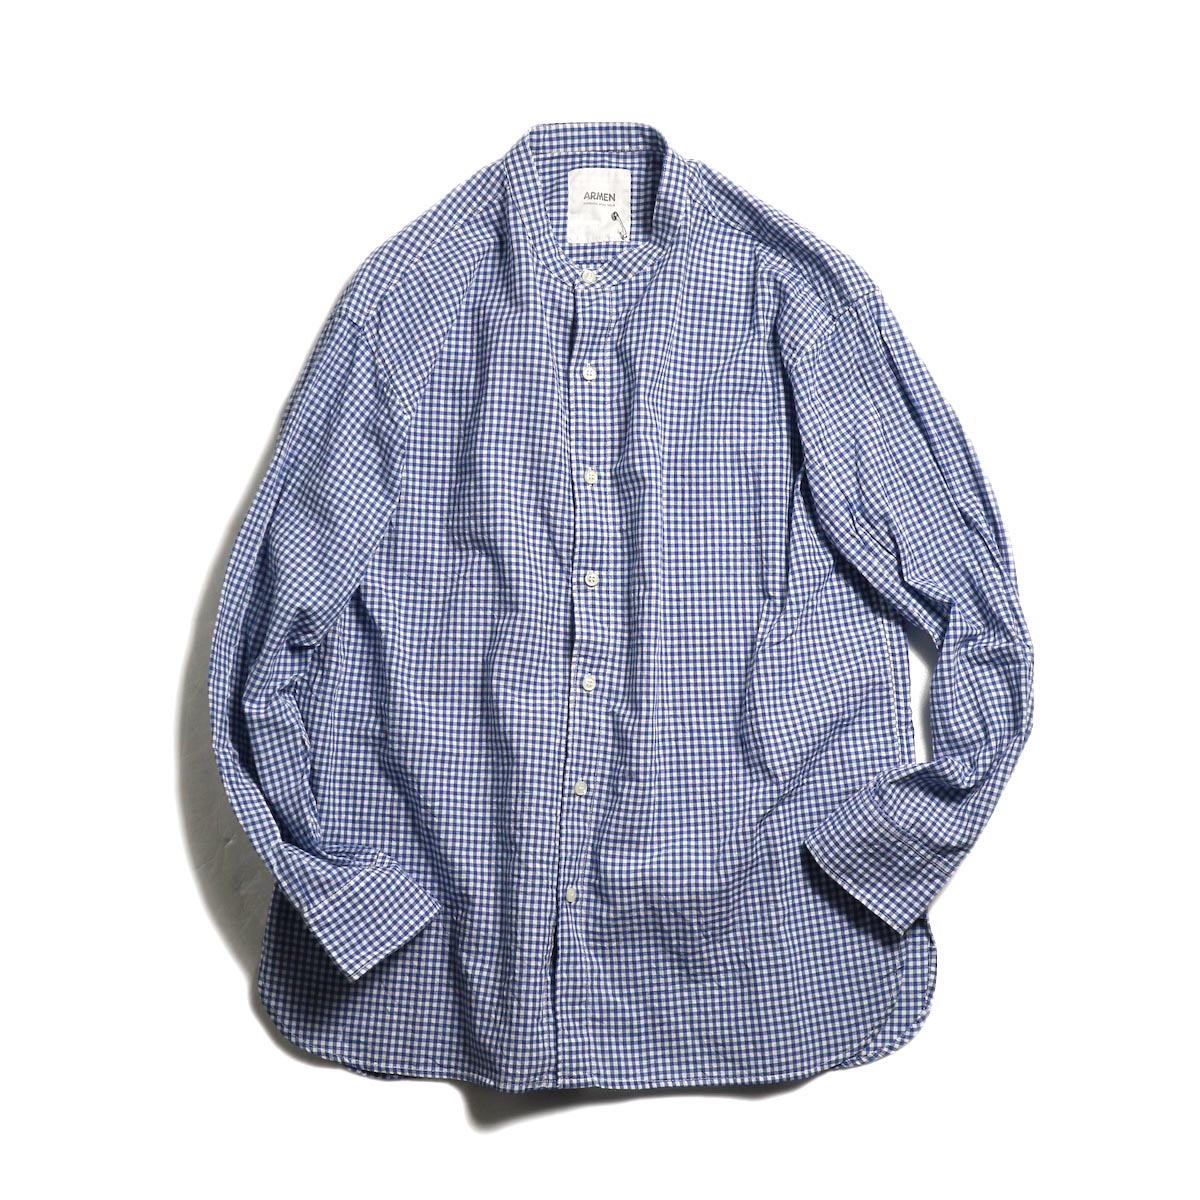 ARMEN / Utility Banded Collar Shirt -Gingham Check